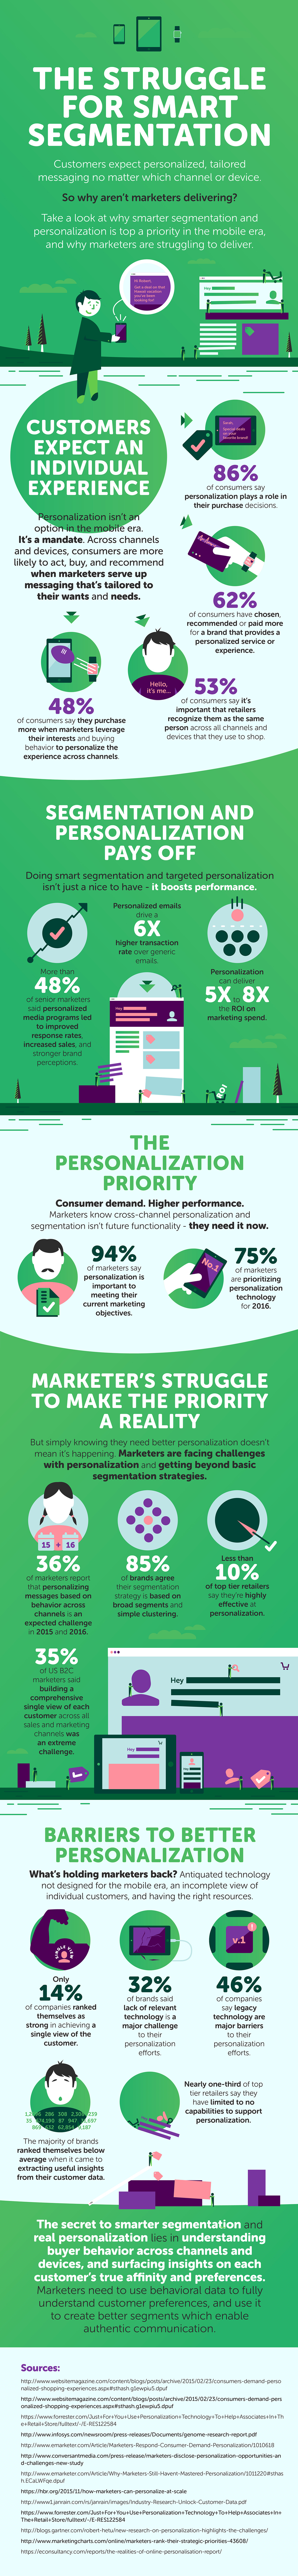 This infographic shows why marketers need to pay more attention to market segmentation.